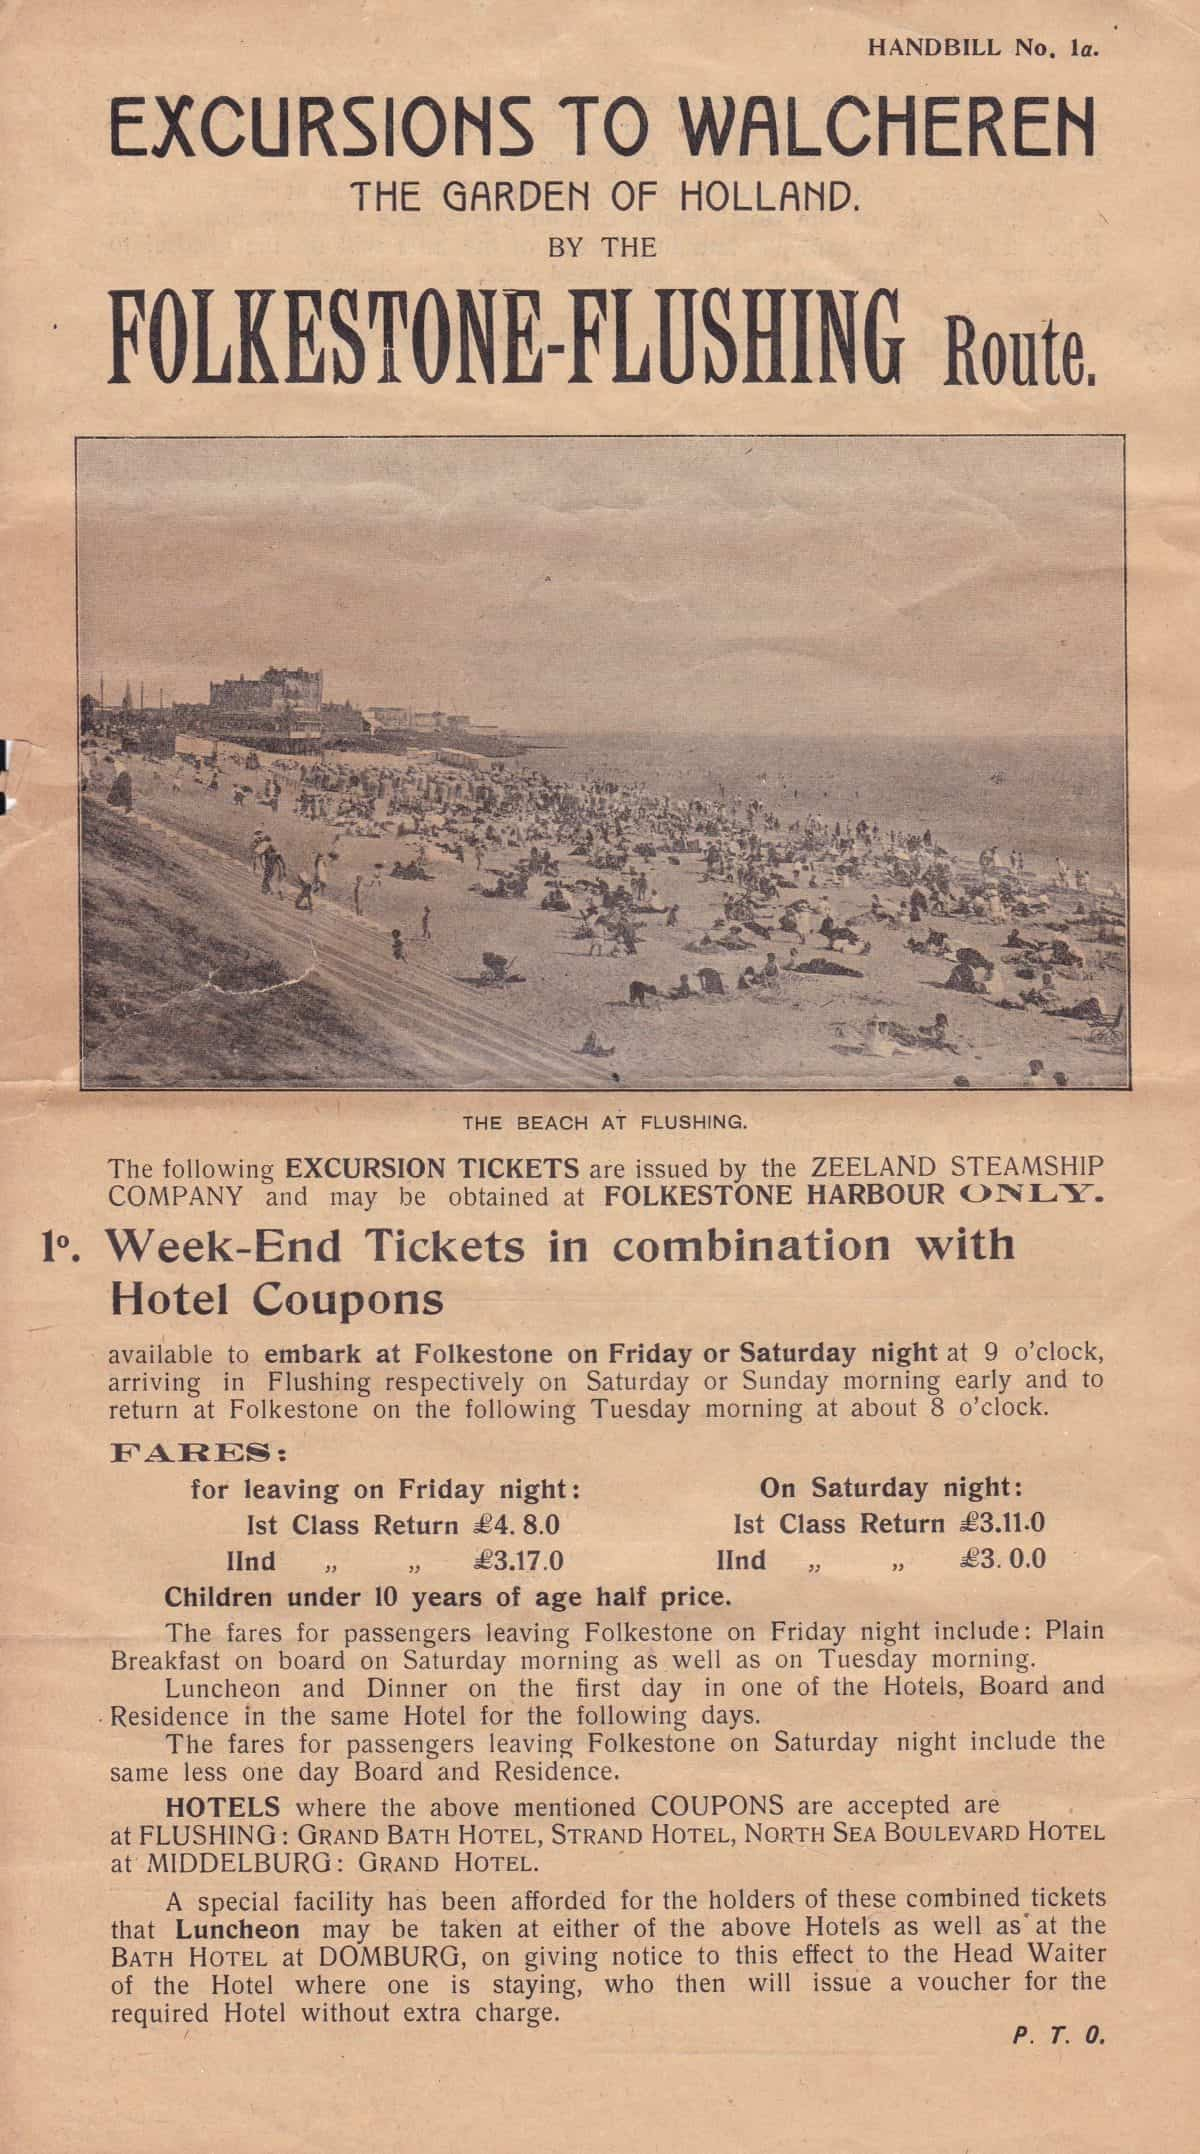 Seaside holidays 15F5202 (2) Excursions to Walcheren Tea Garden of Holland by the Folkestone -Flushing route. Folkestone Congress June 20th to 25th 1921